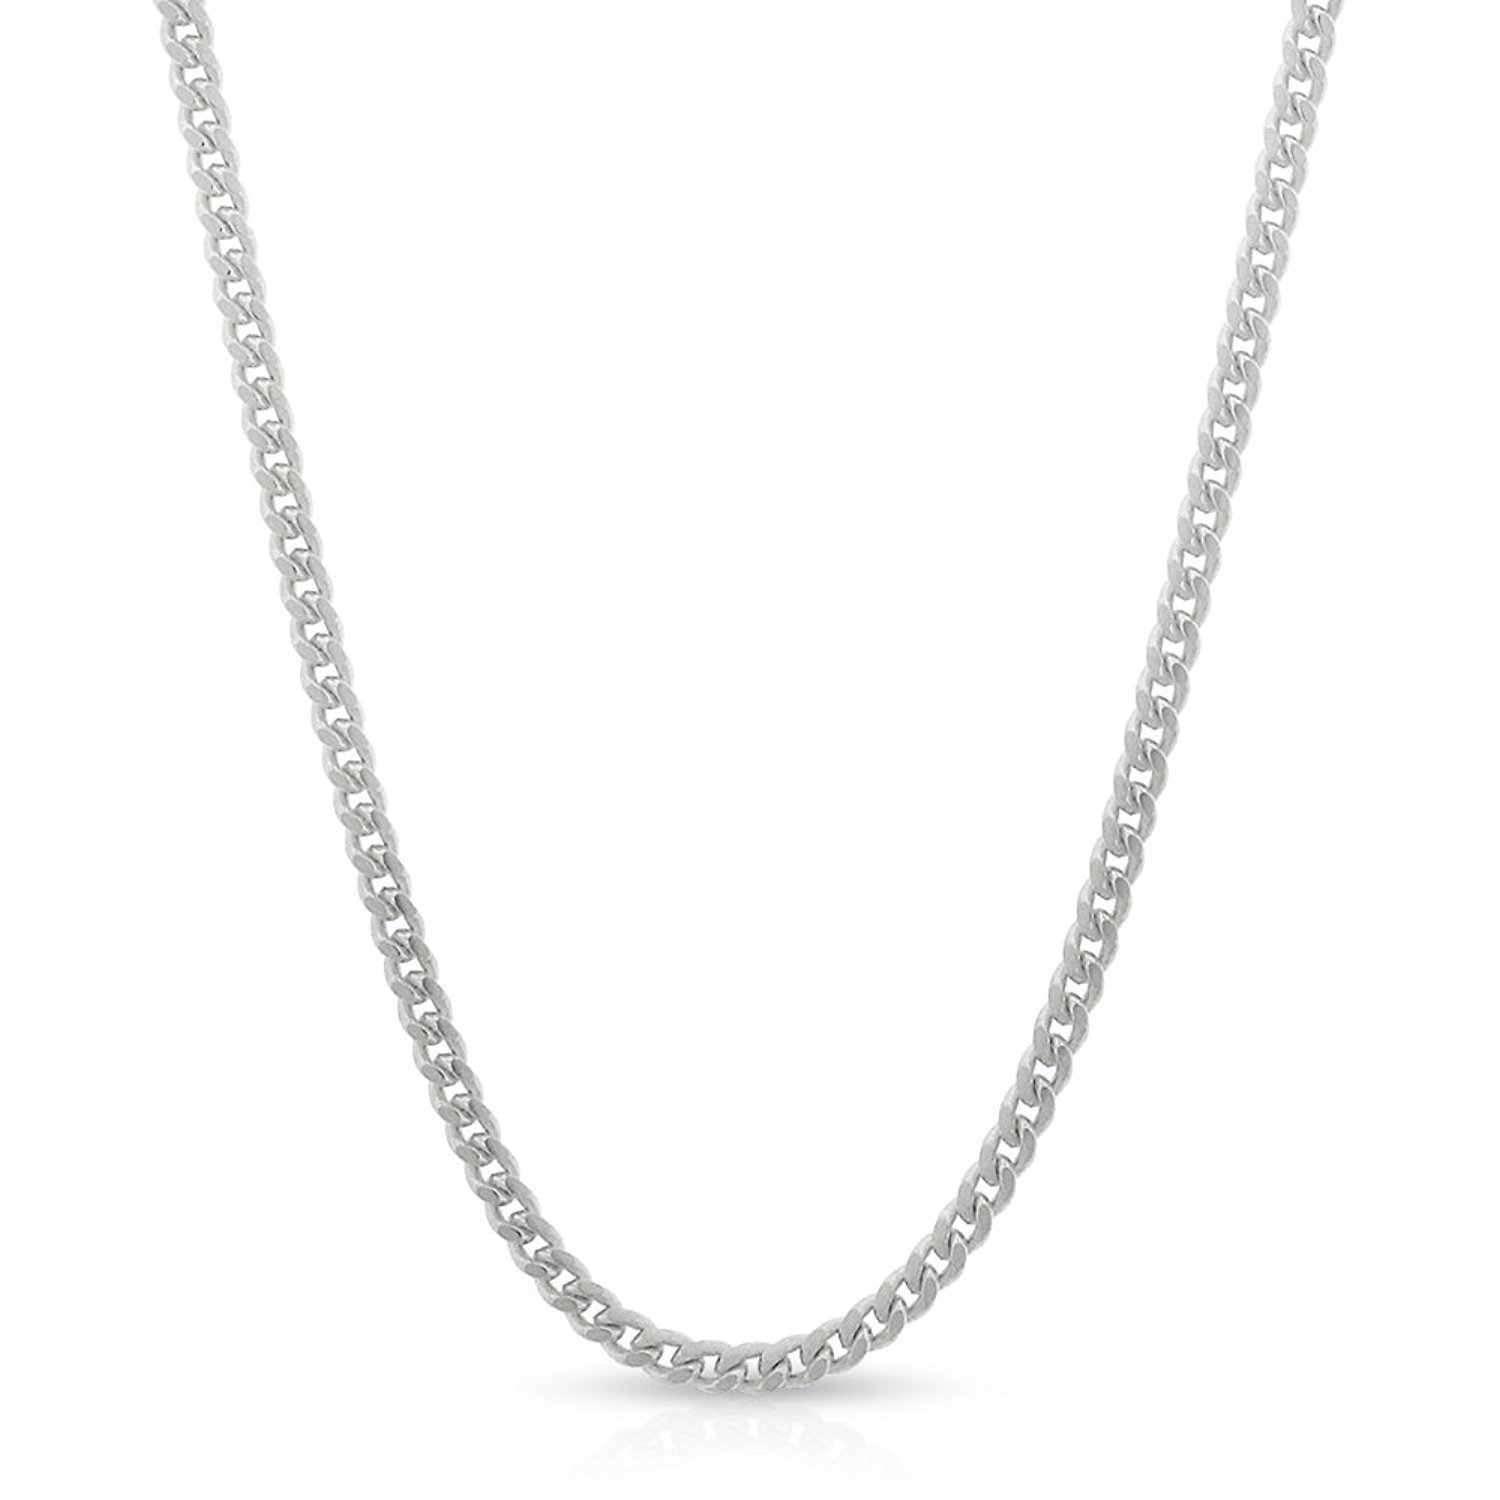 14k White Gold 2mm Solid Miami Cuban Curb Link Thick Necklace Chain 16'' - 30'' (24)